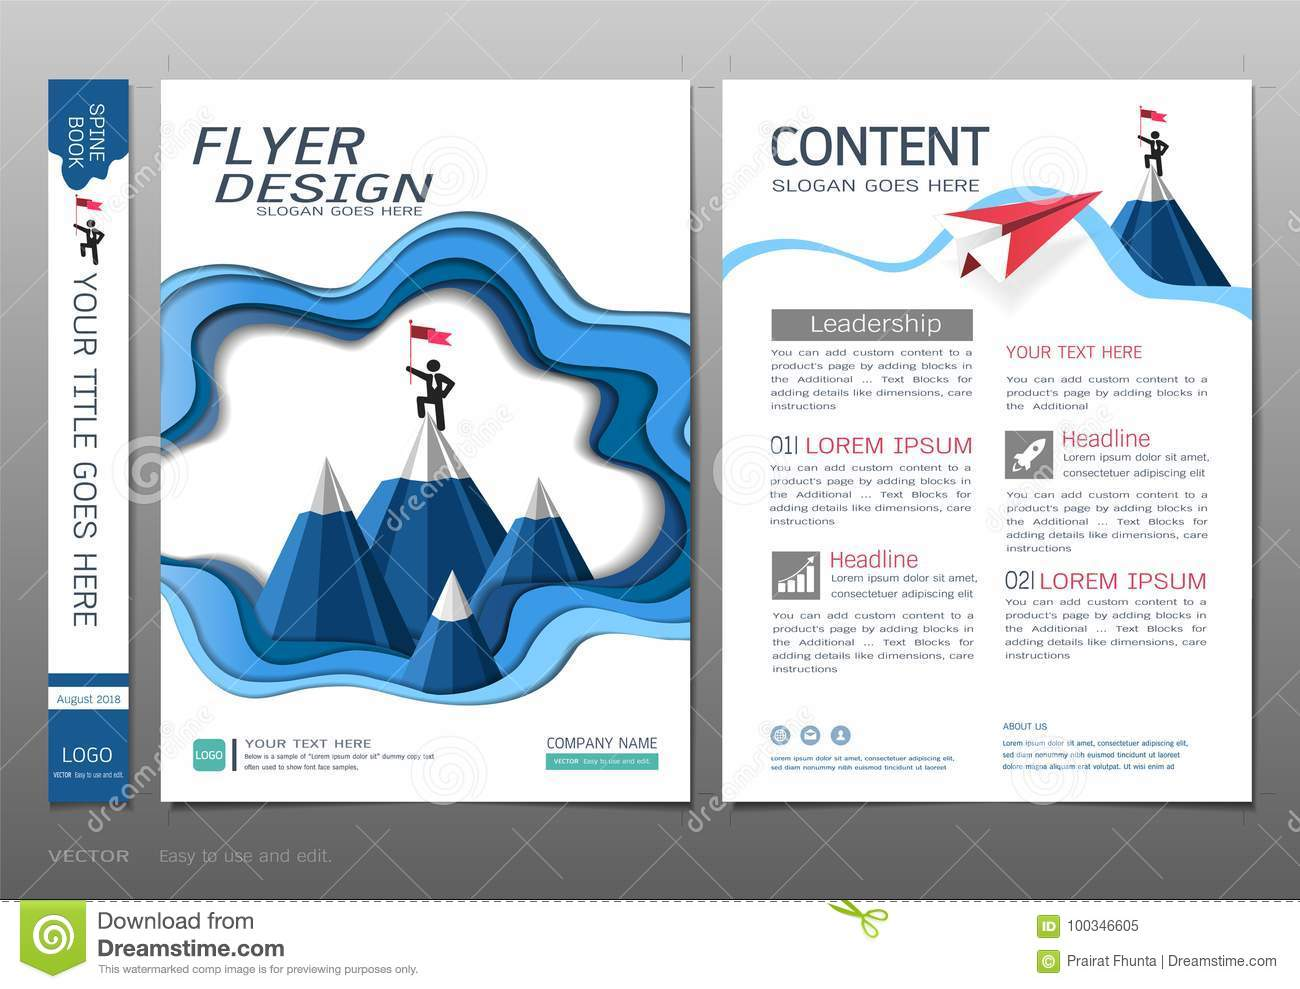 Covers Book Design Template Vector, Business Engineering